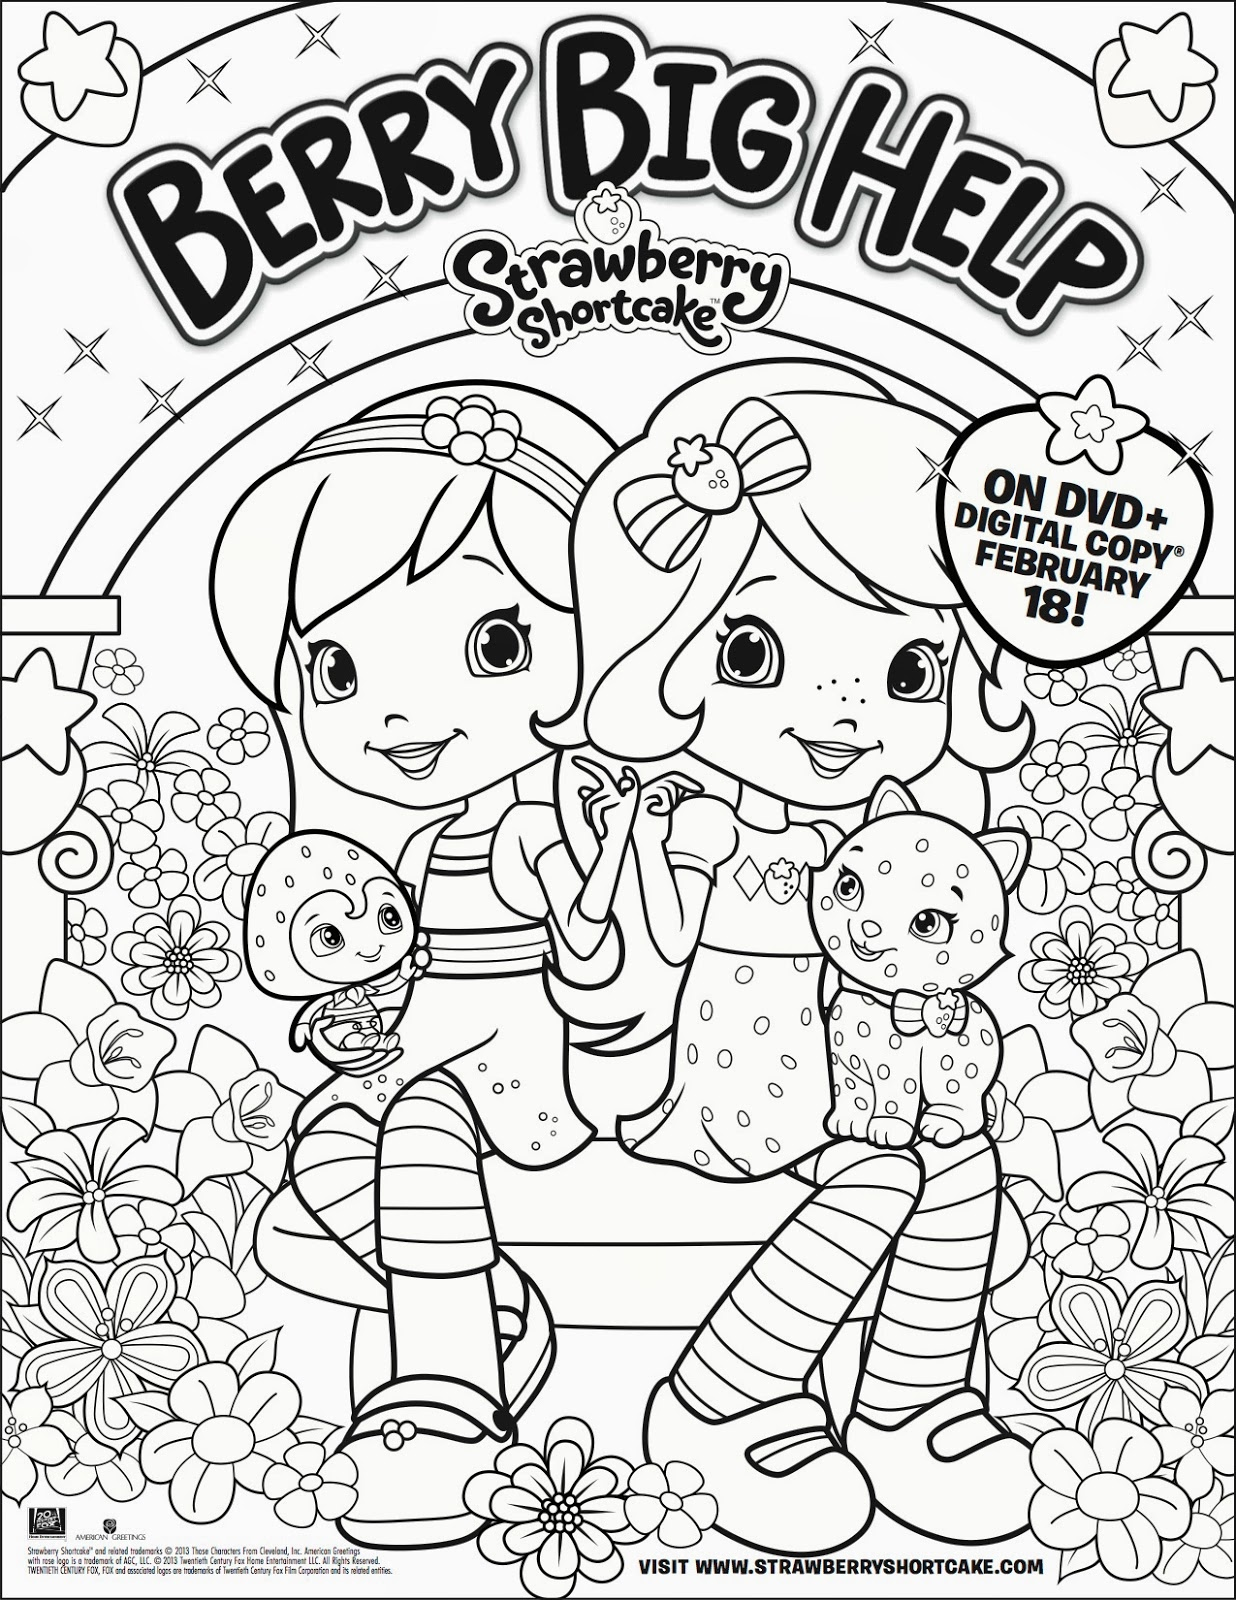 Strawberry Shortcake Printable COloring Sheets